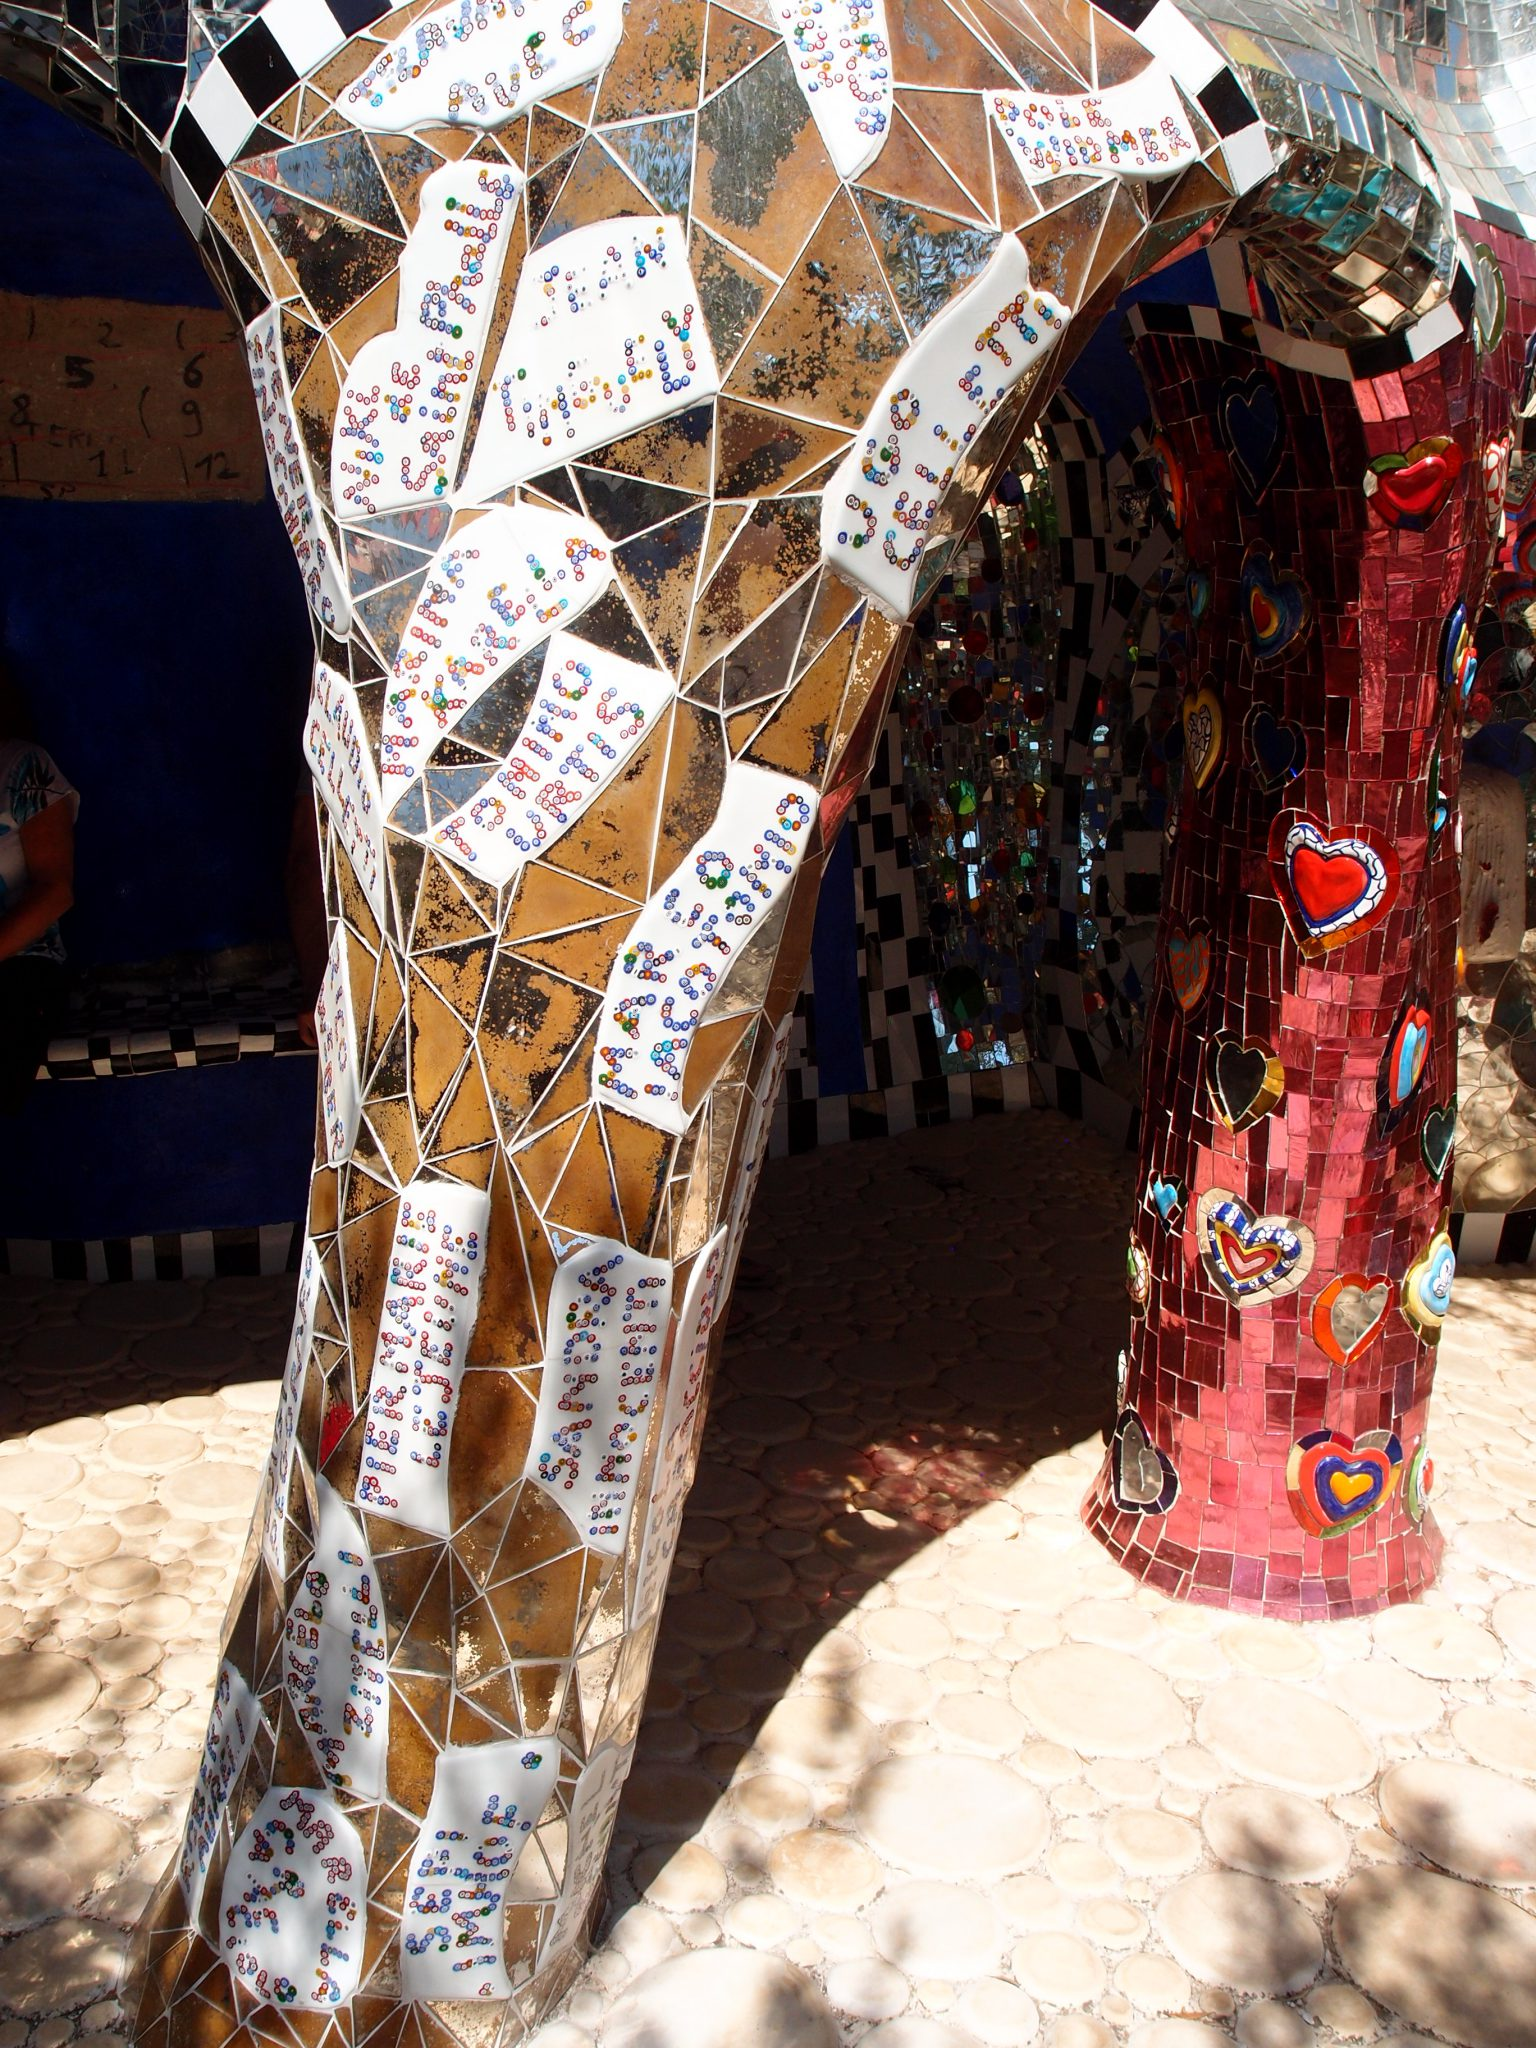 Back down now to The Emperor's Courtyard. Upon this column are the names of all the artists and craftspeople who built Niki de Saint Phalle's Tarot Garden.